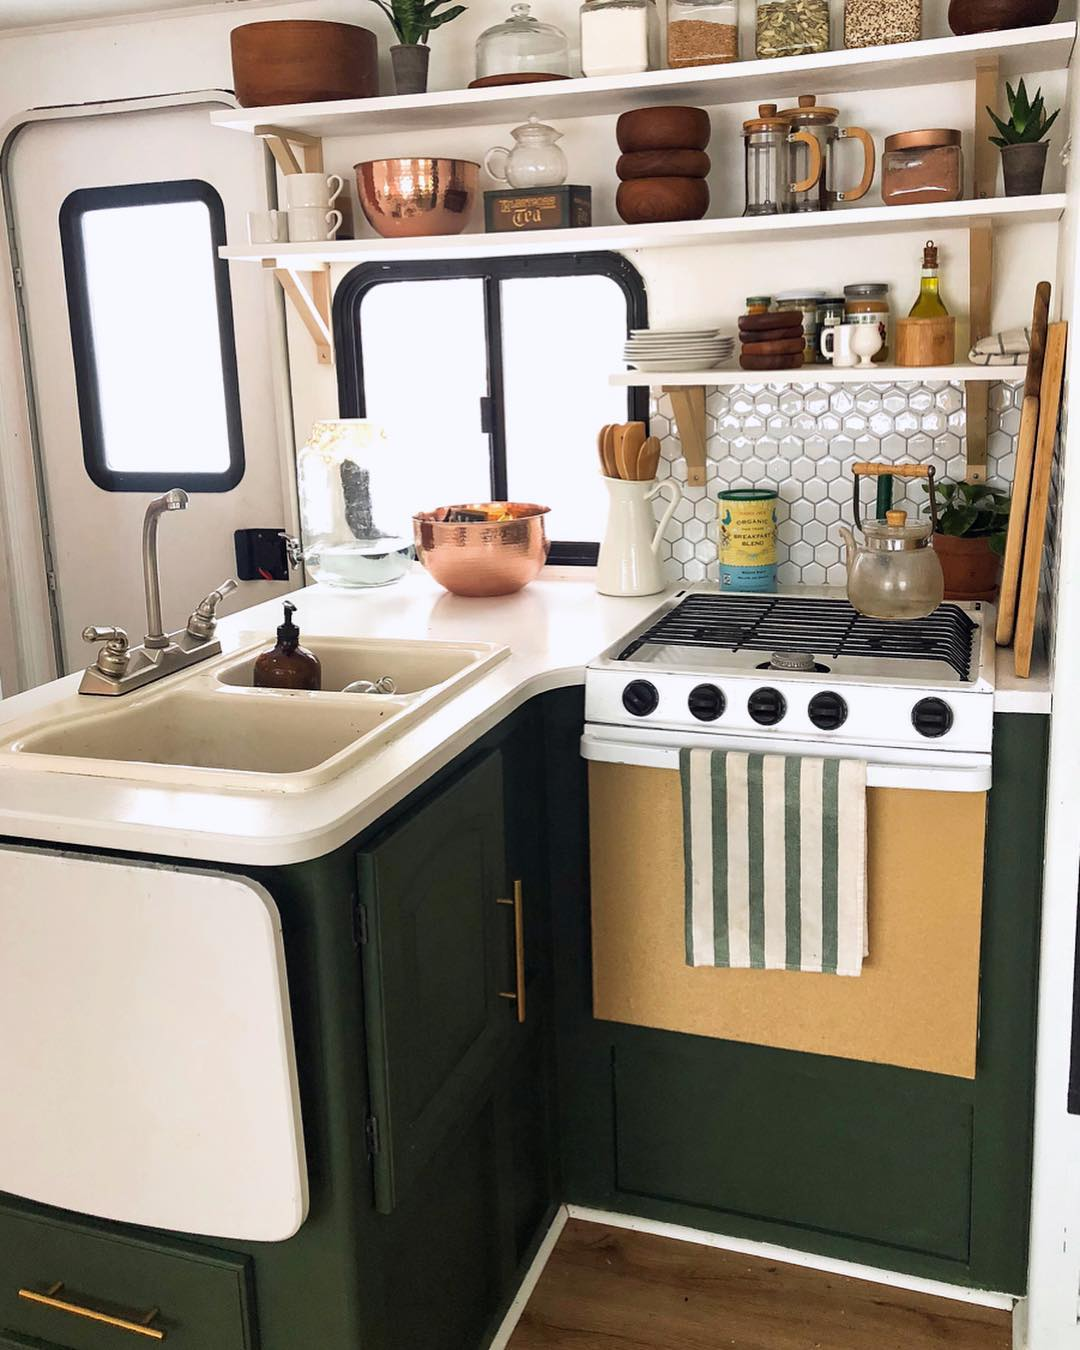 Check out this beautiful RV kitchen transformation!